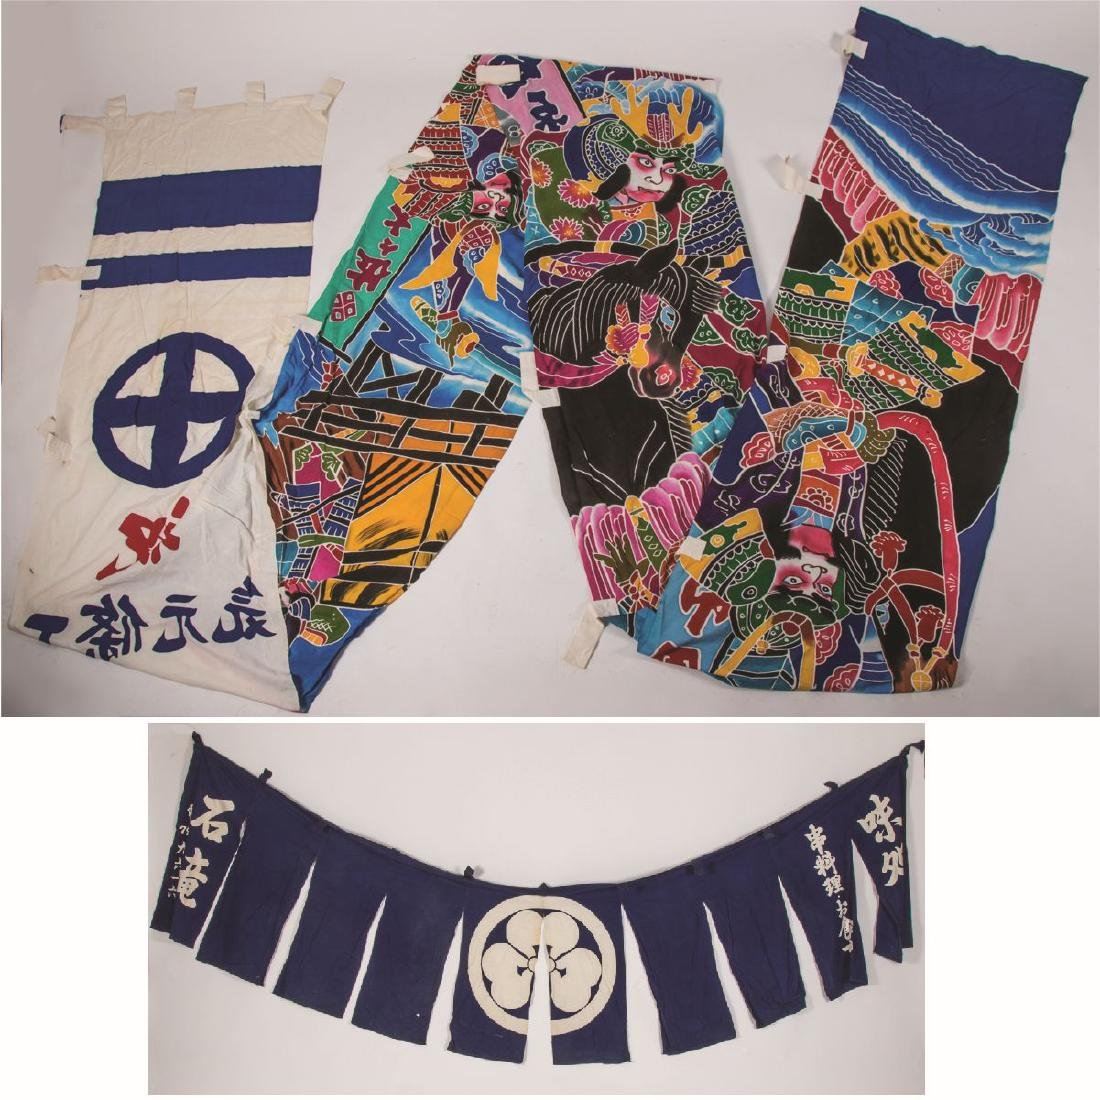 A Miscellaneous Collection of Asian Printed Cloth - 10